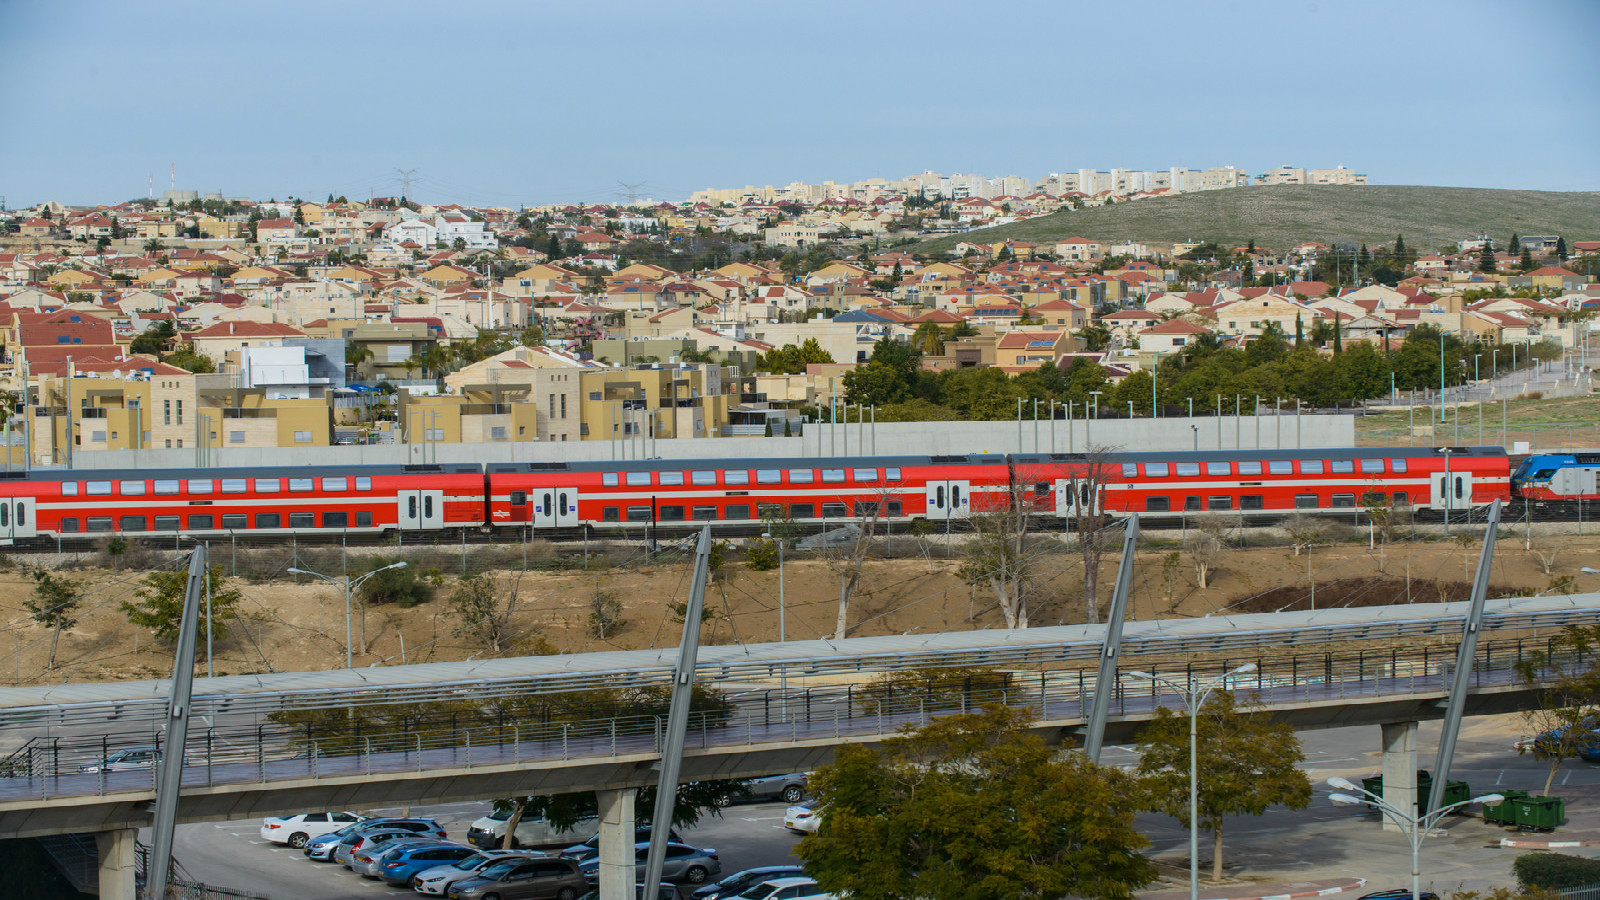 An Israel Railways train passes next to Beersheva's Mexico Bridge. Photo by Dani Machlis/BGU